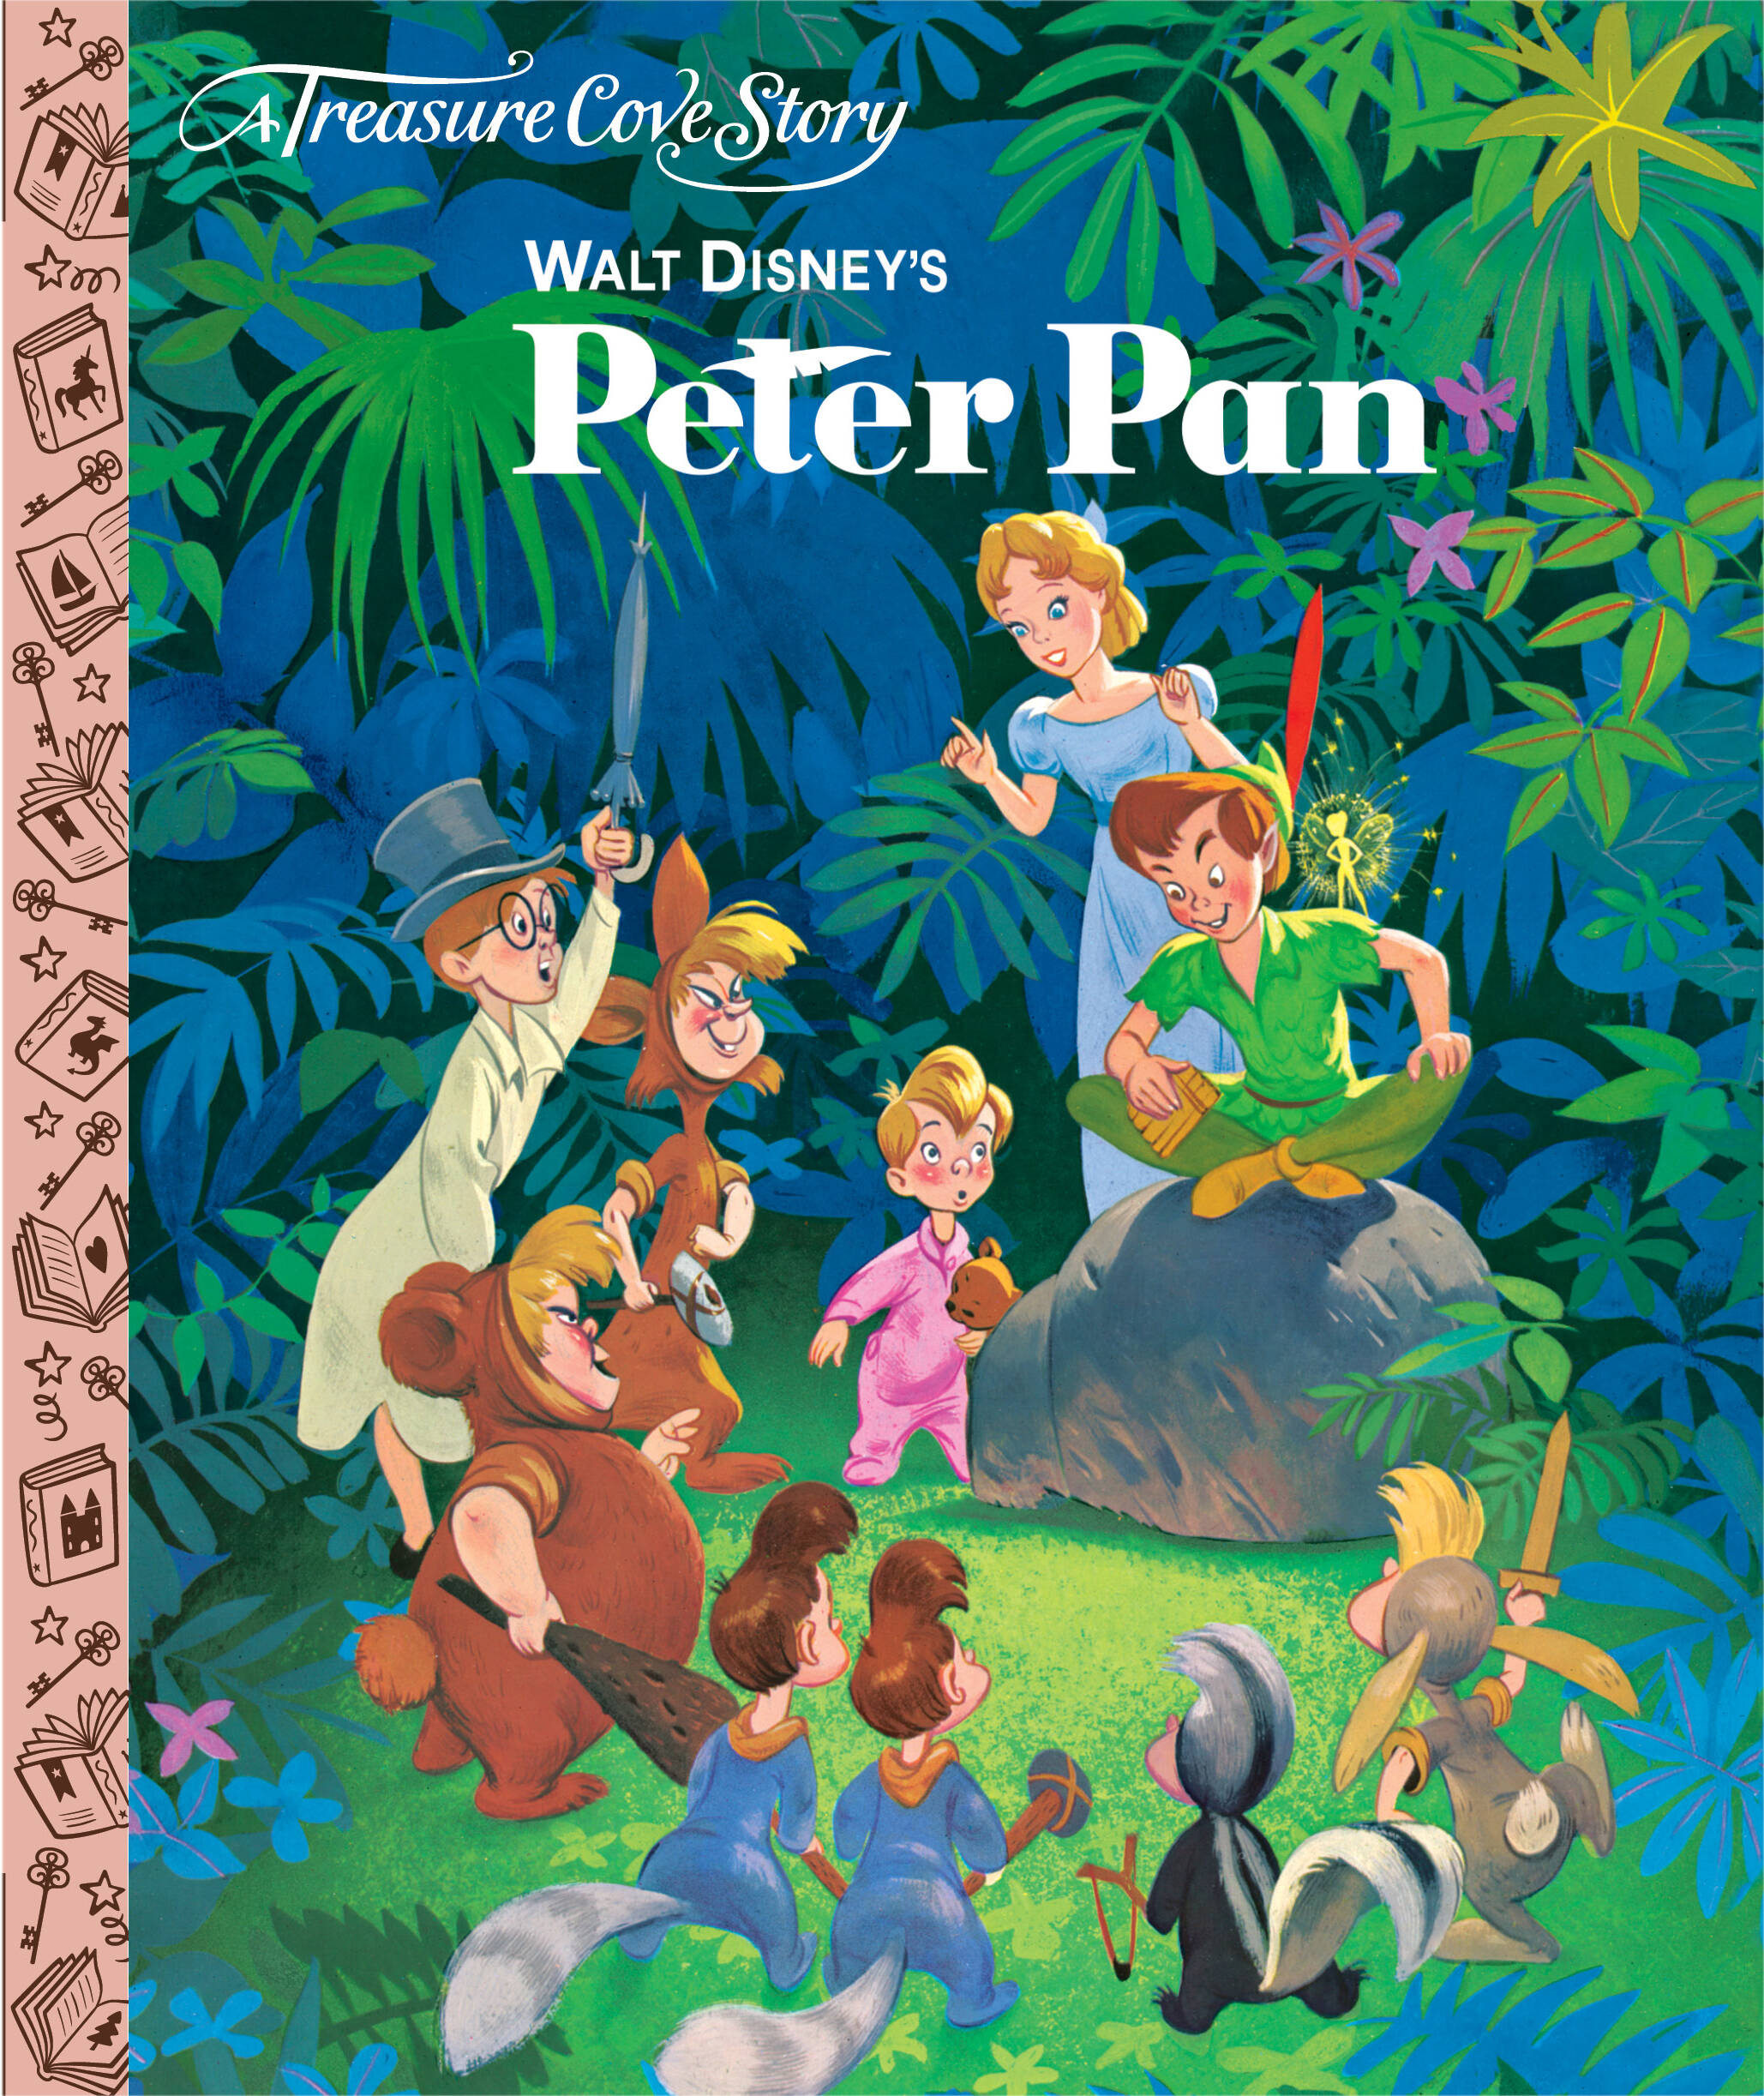 Disney Peters Pan - Treasure Cove Stories